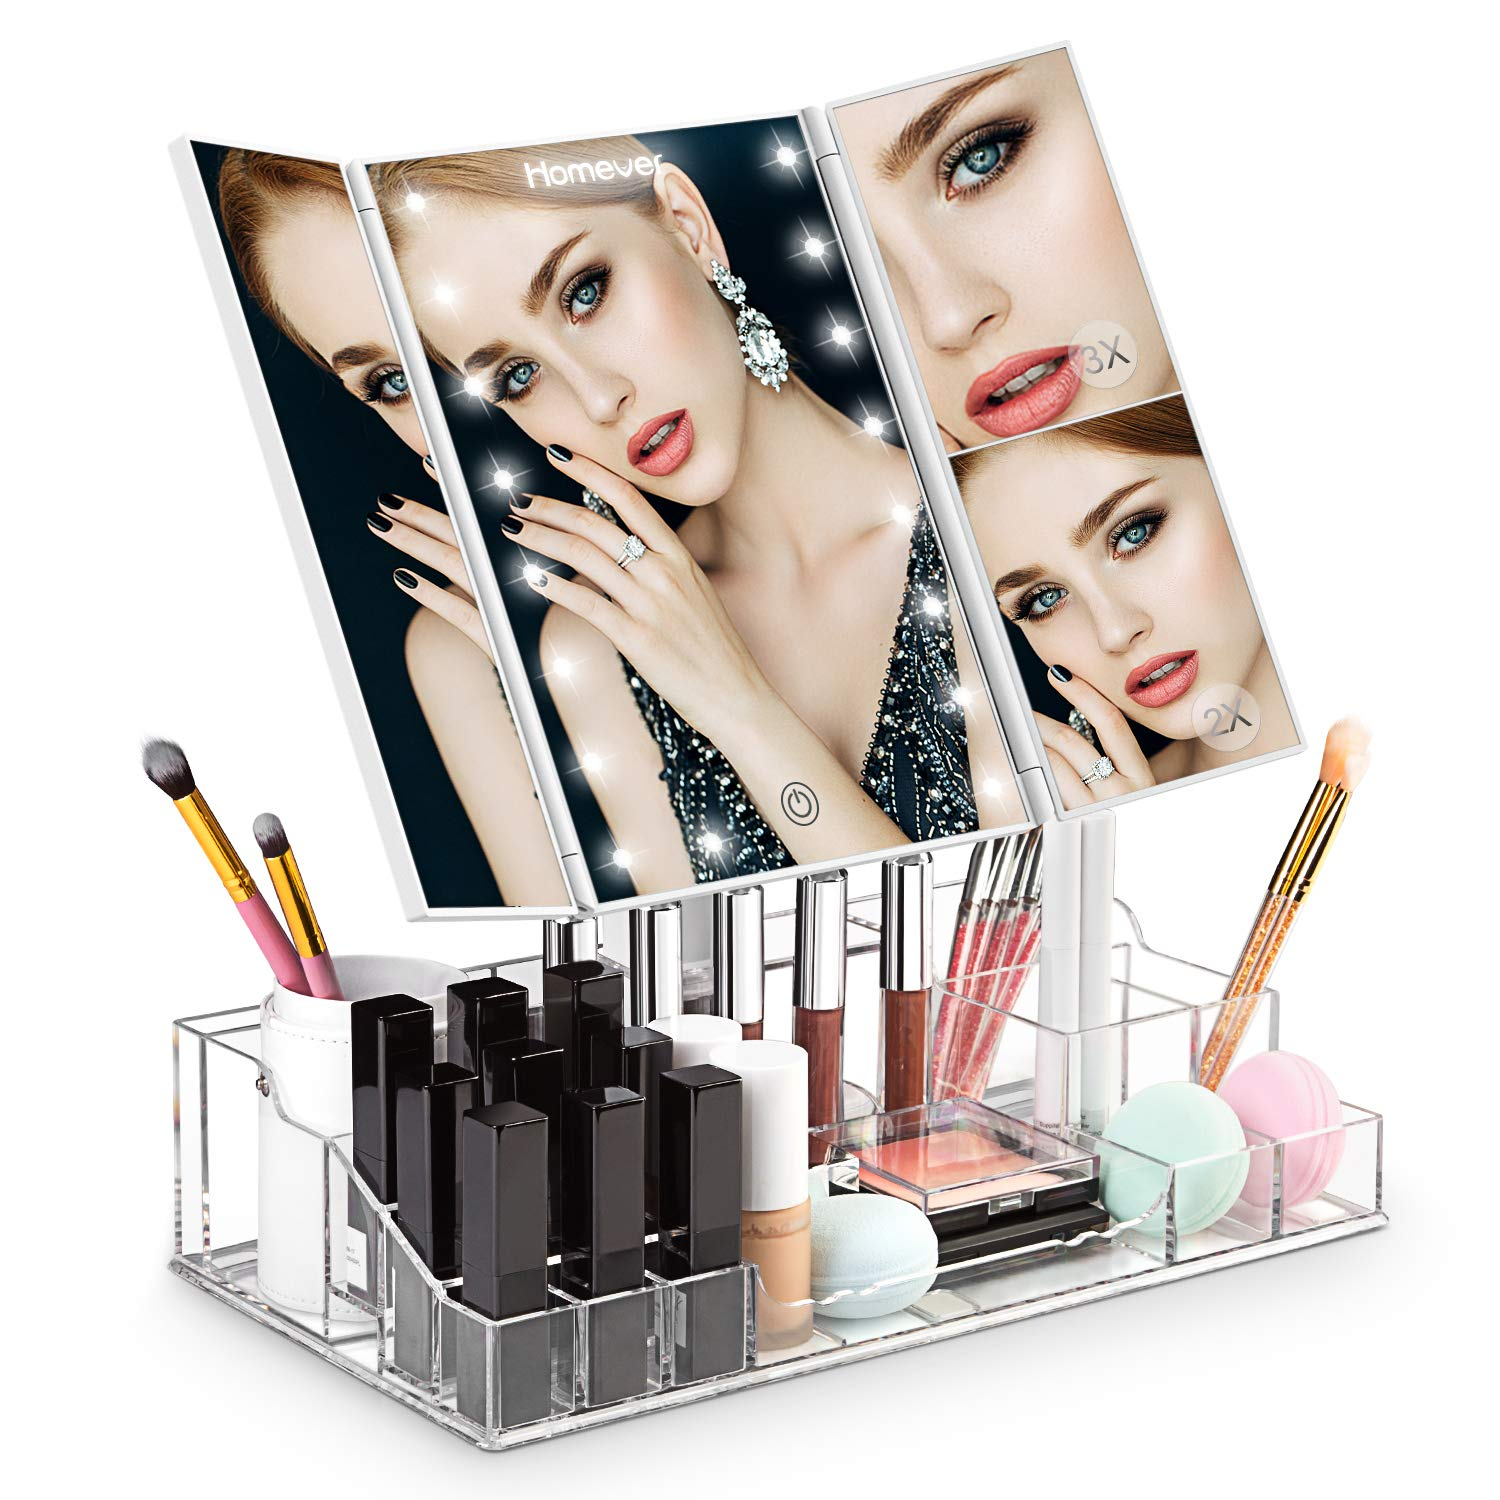 LED Makeup Mirror, Homever Vanity Mirror with Lights and Magnification for Makeup, Lighted Makeup Mirror with Acrylic Makeup Organizer, 21Pcs LED Lights and Touch Screen 180 Degree Rotation